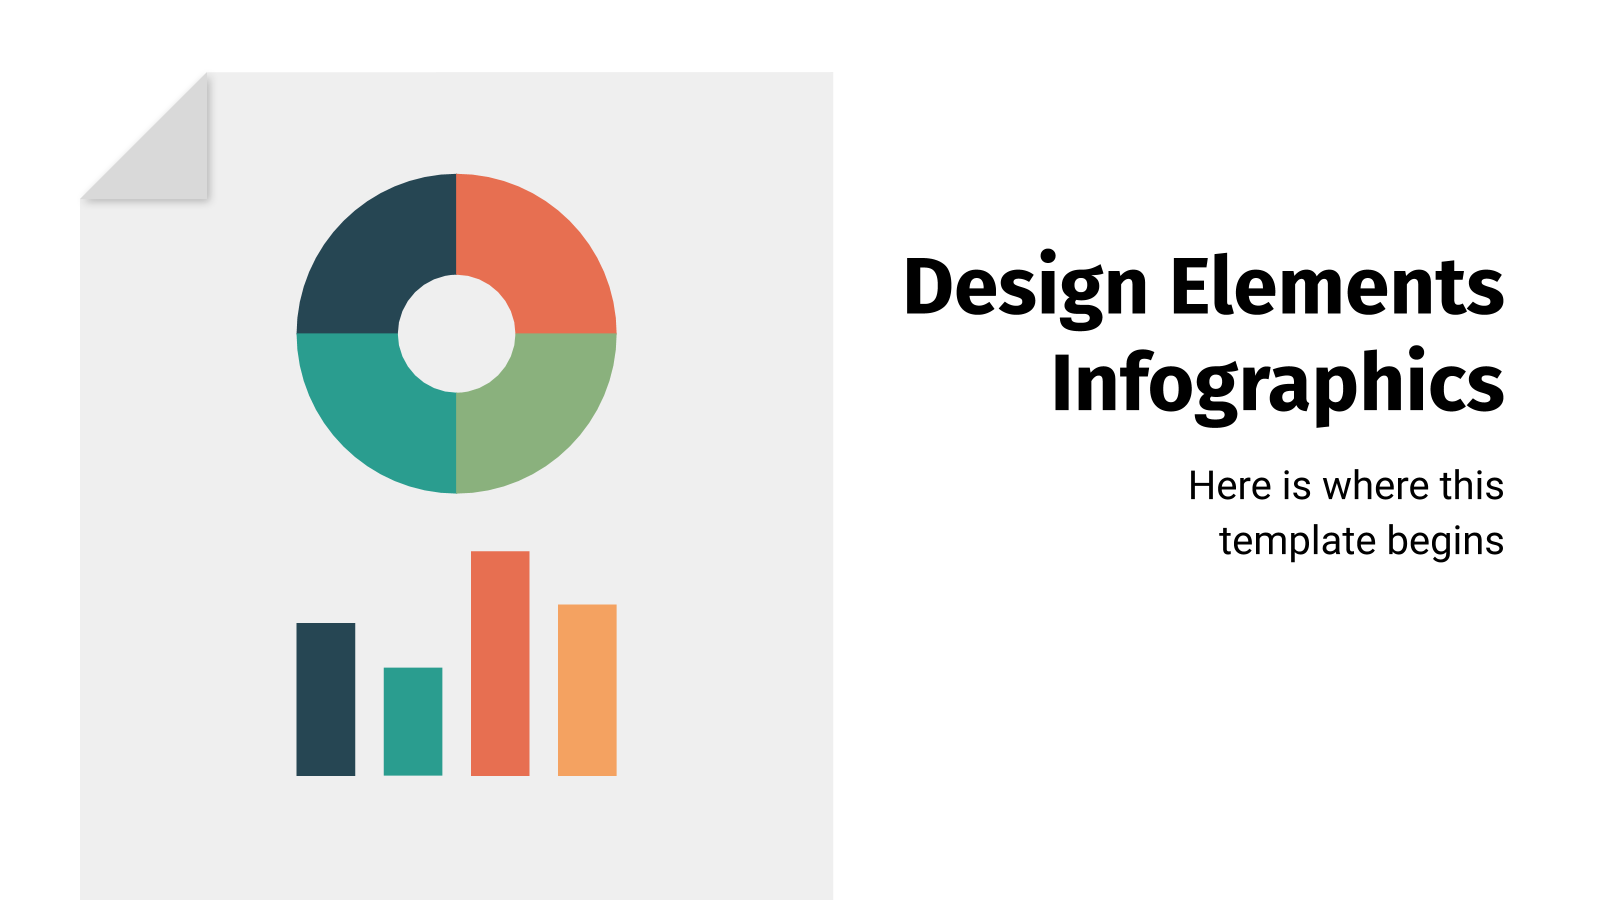 Design Elements Infographics presentation template